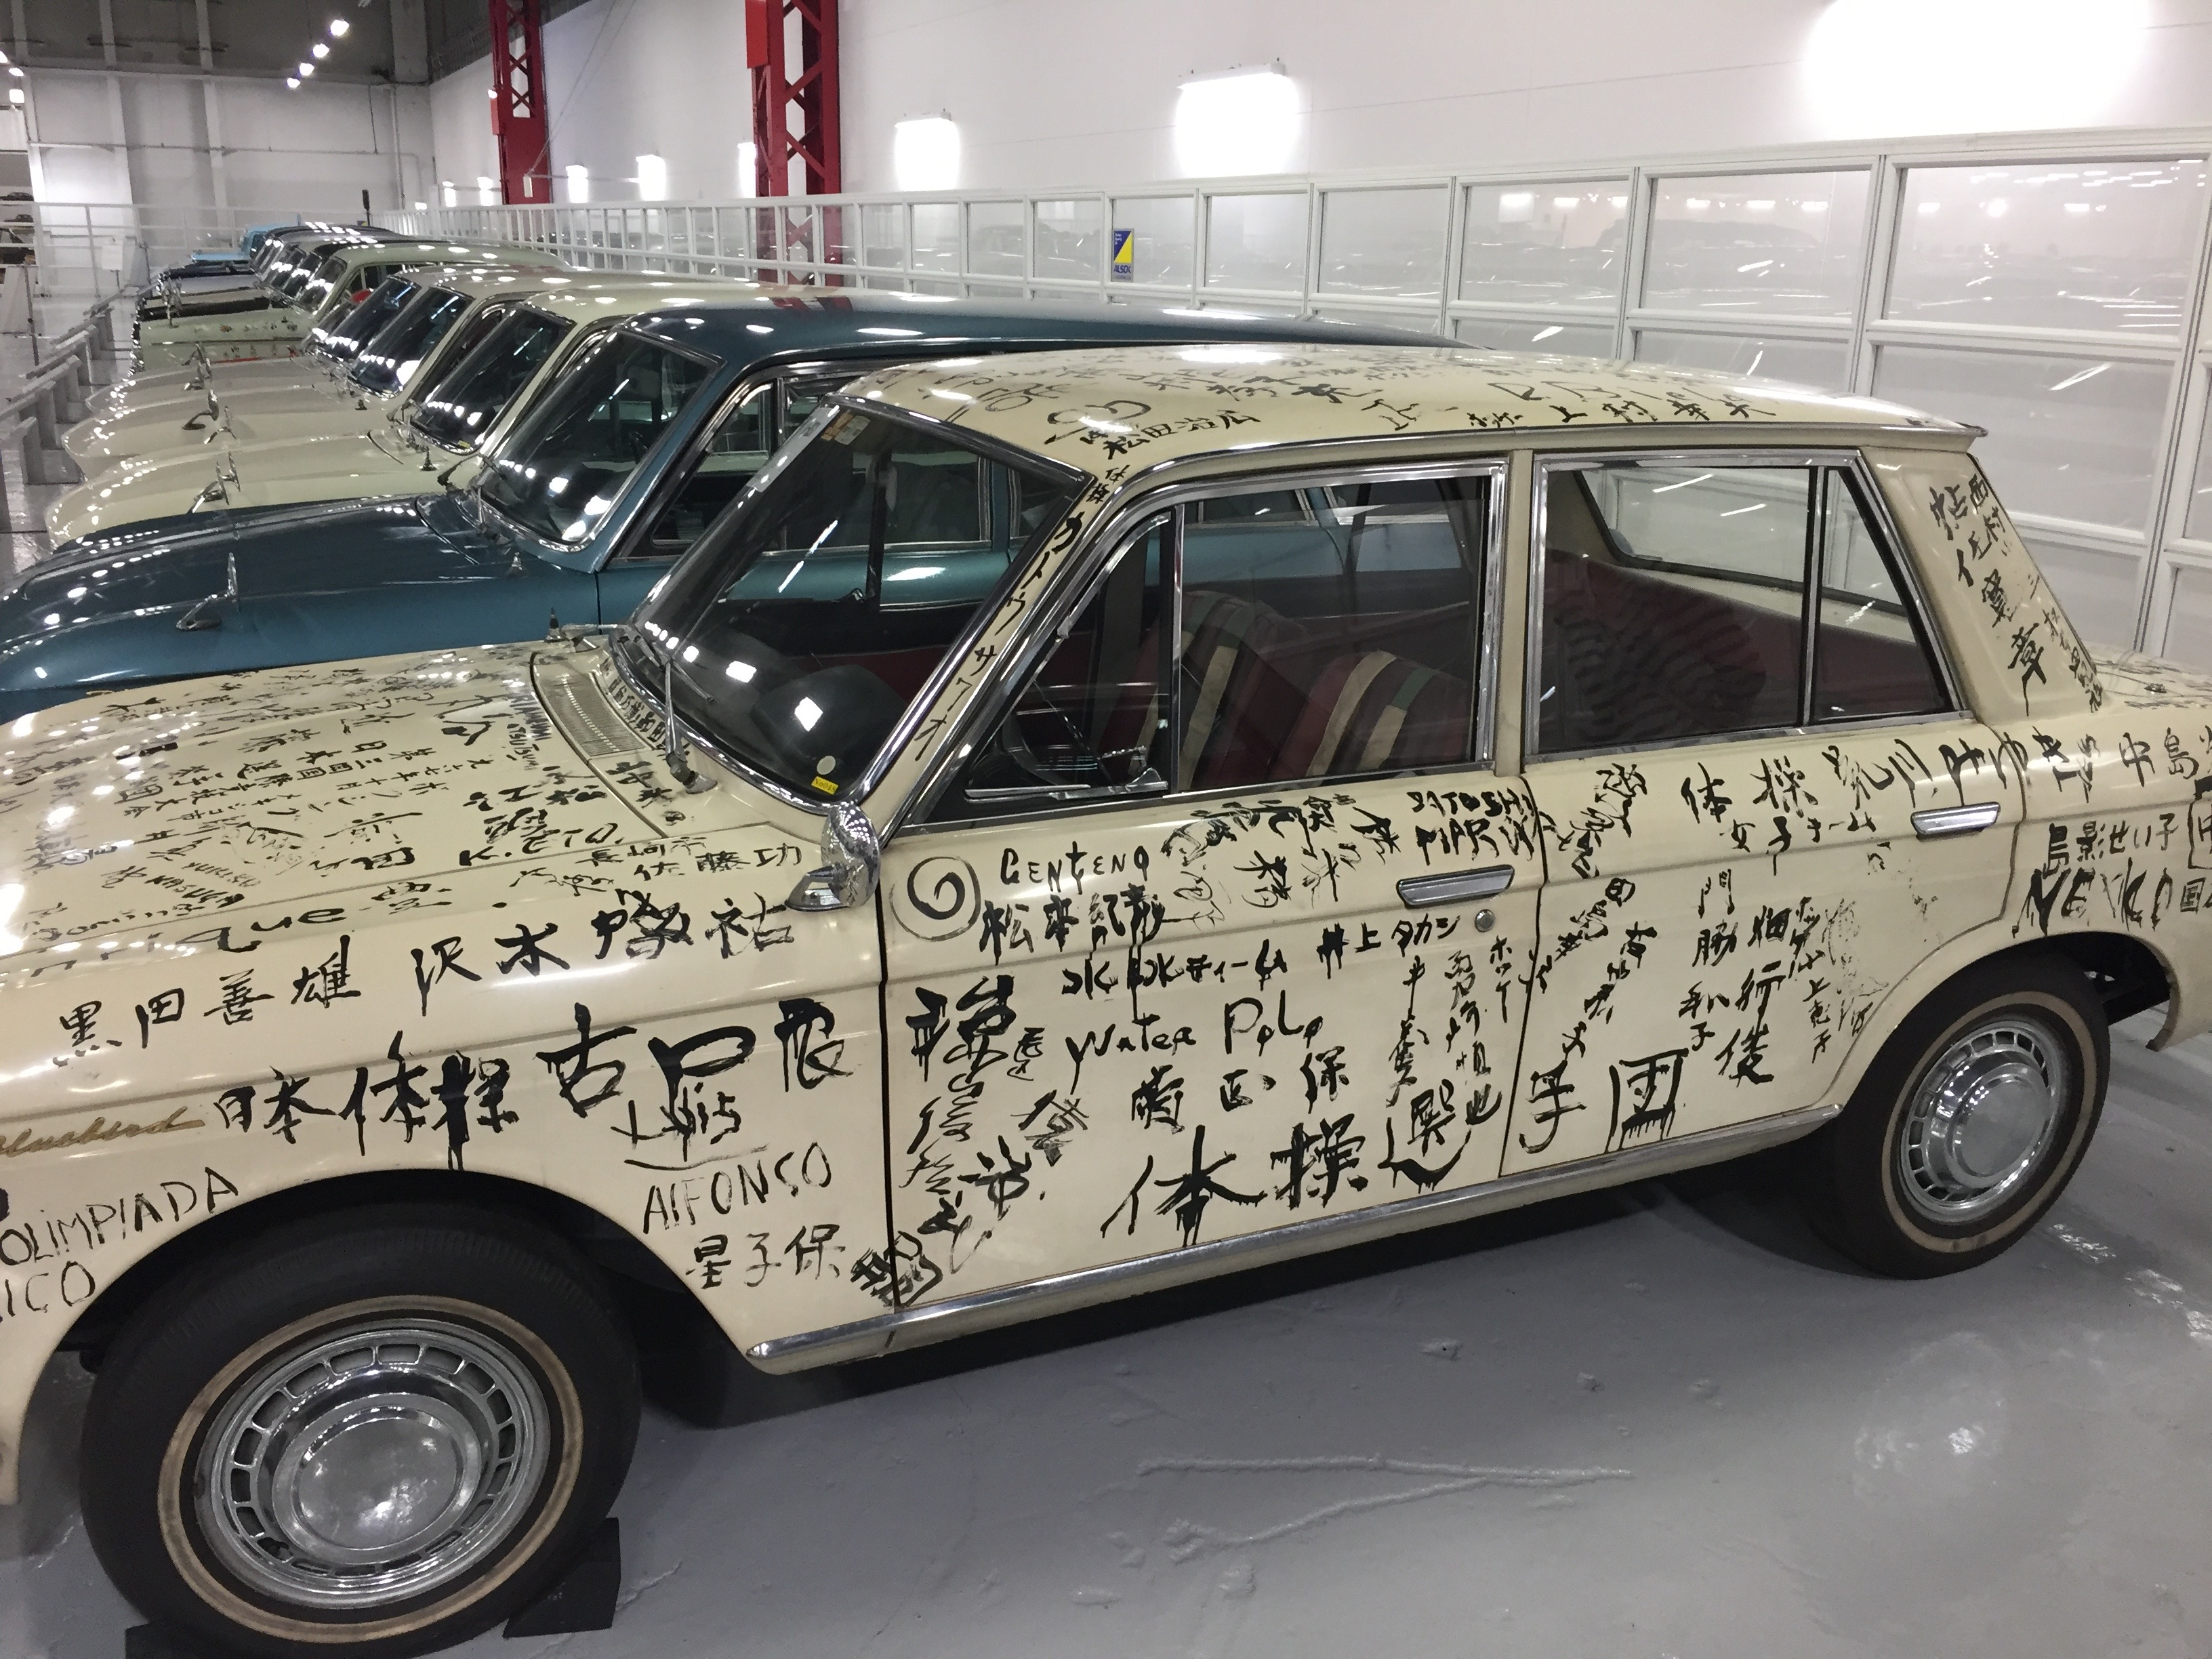 1968 Datsun Bluebird 1300. Covered in the signatures of the whole Japanese team on the last day of the 1968 Olympics in Mexico.